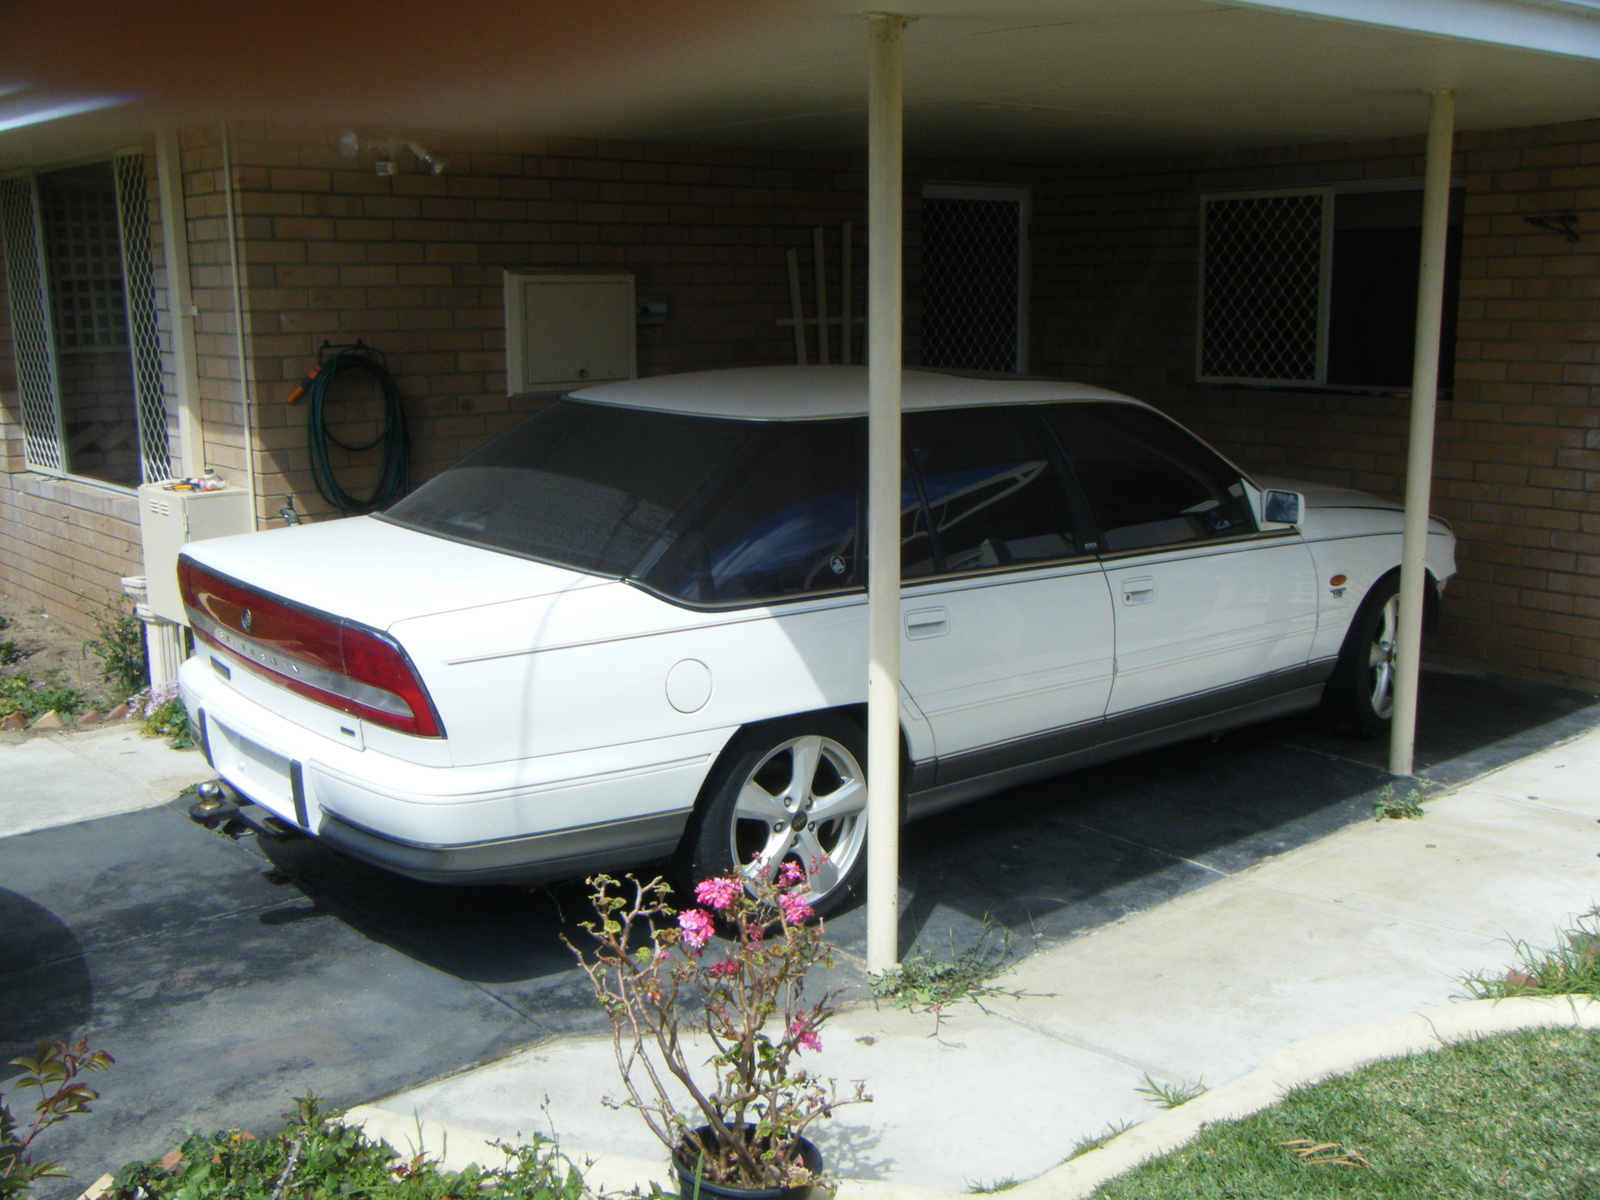 Cars holden caprice 1995 #14